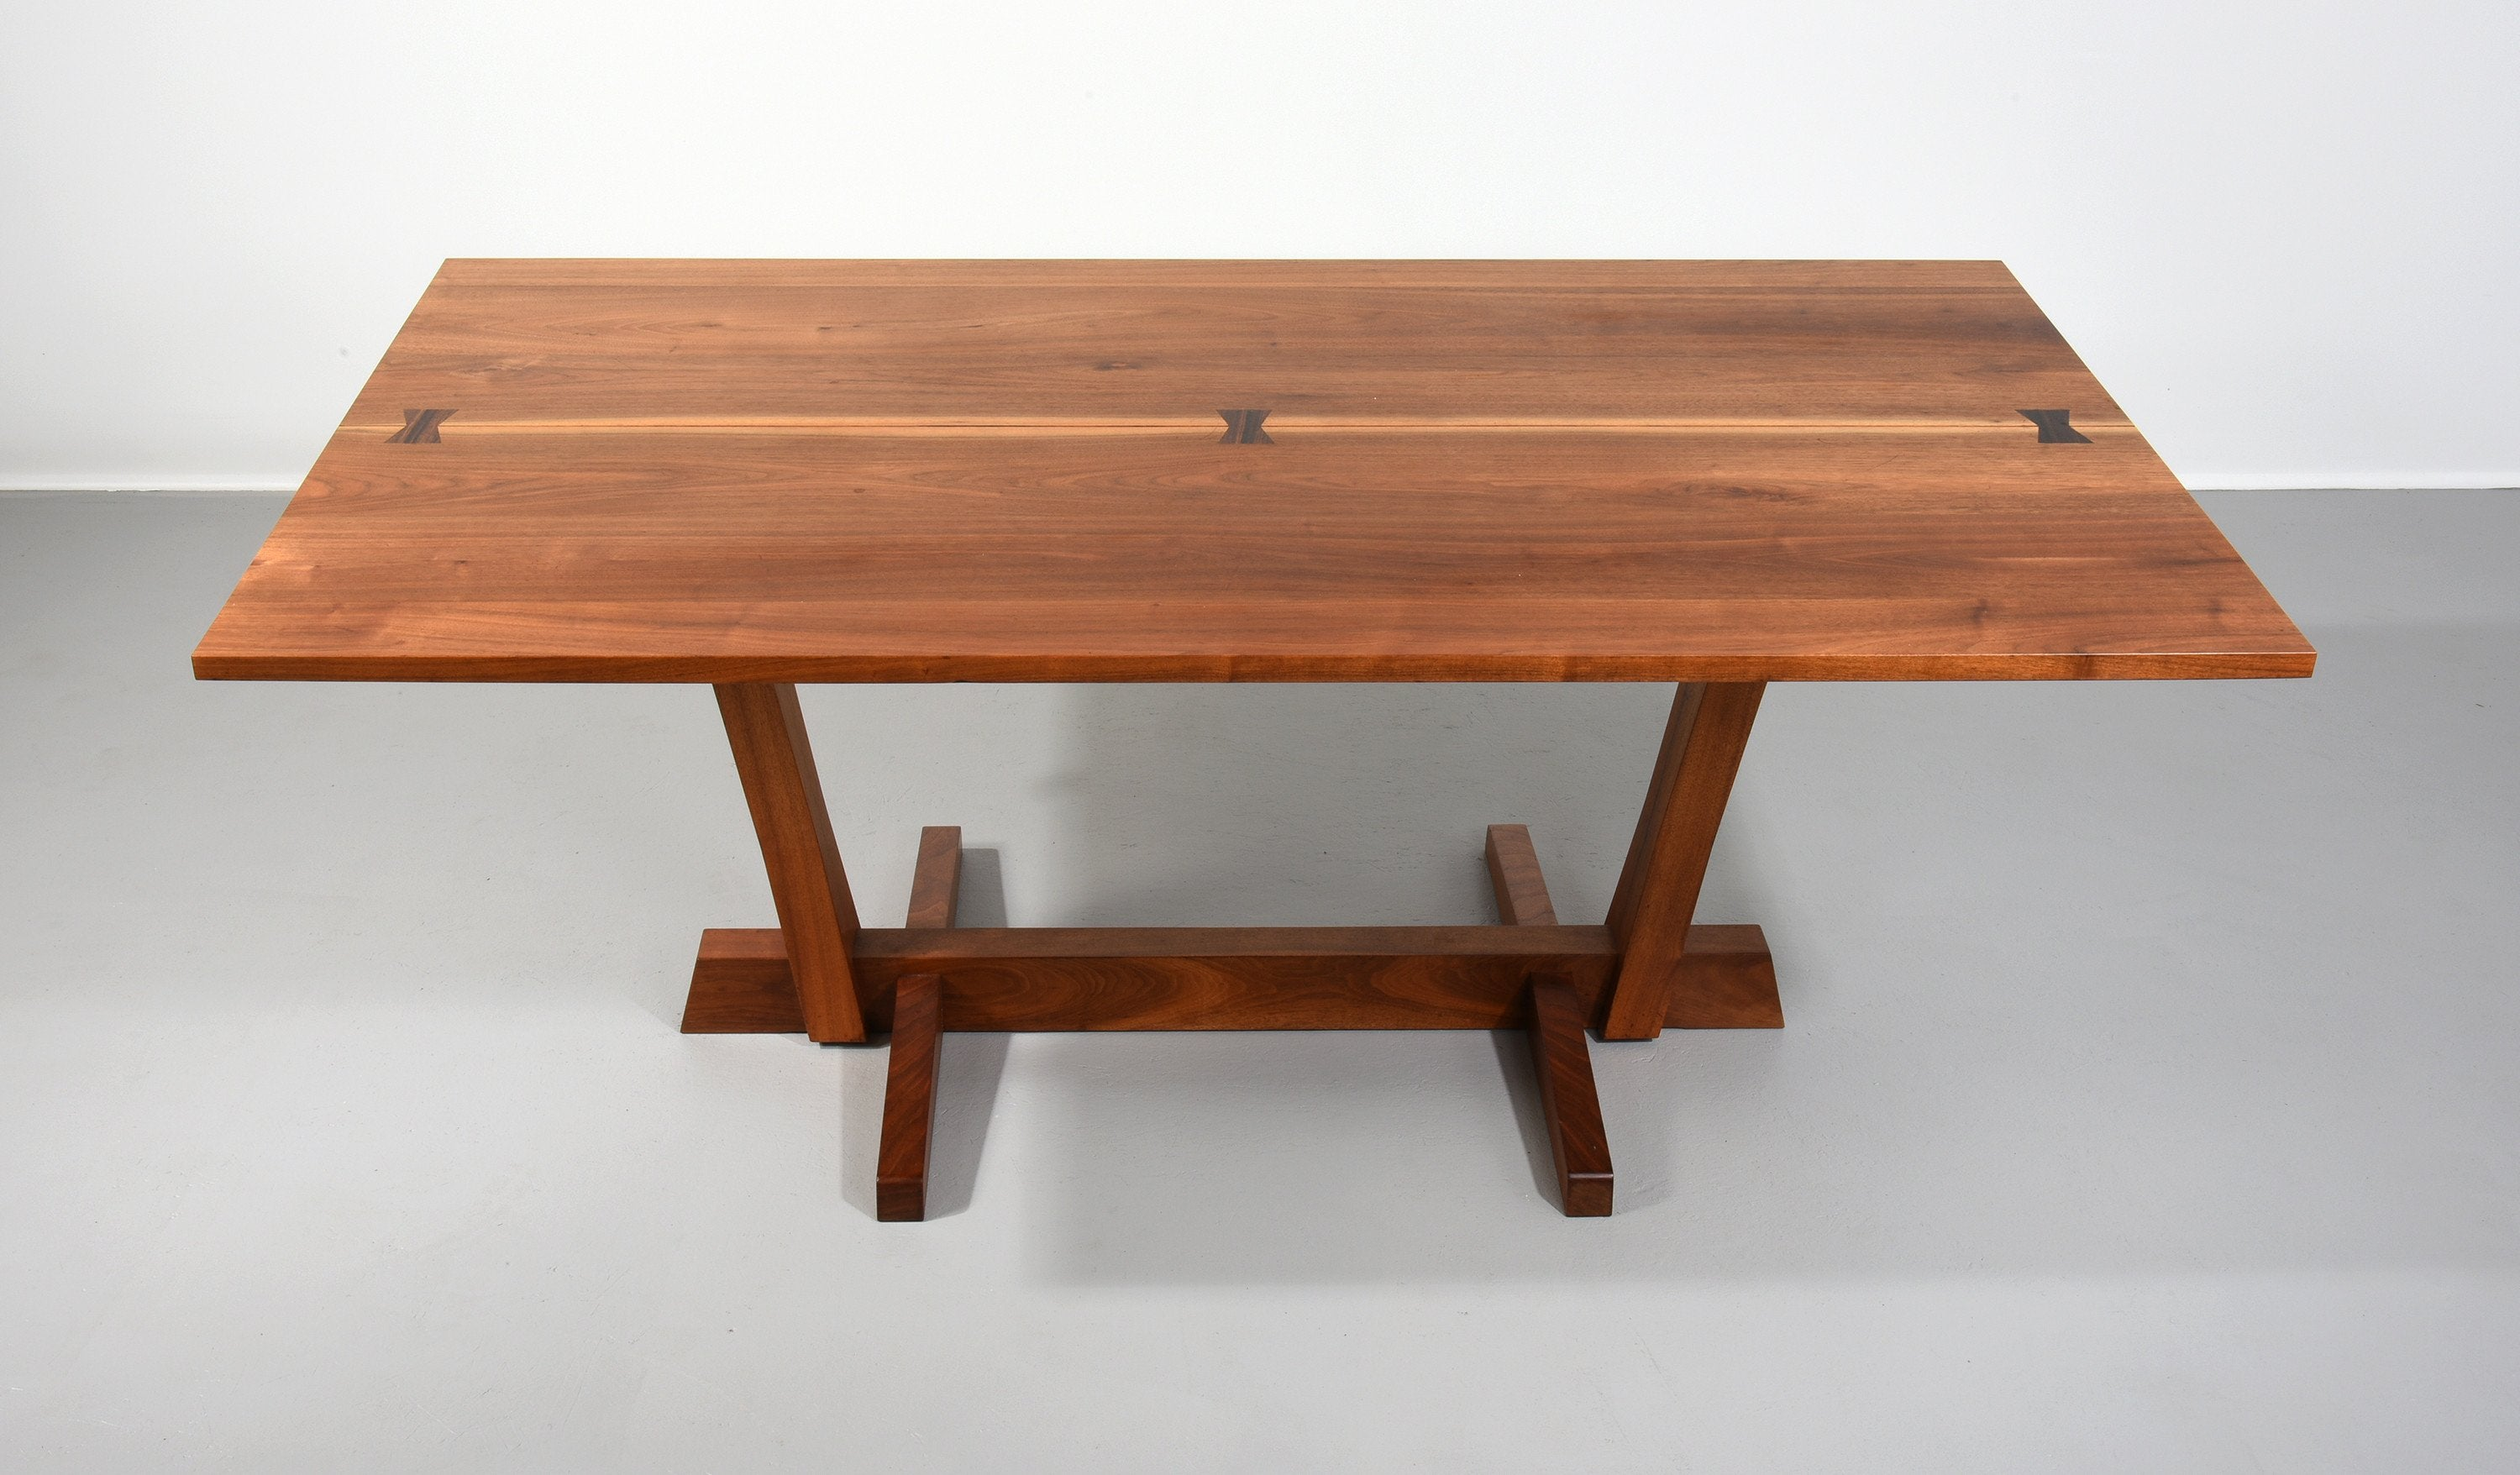 George Nakashima Conoid Dining Table in Walnut and Rosewood 1970s